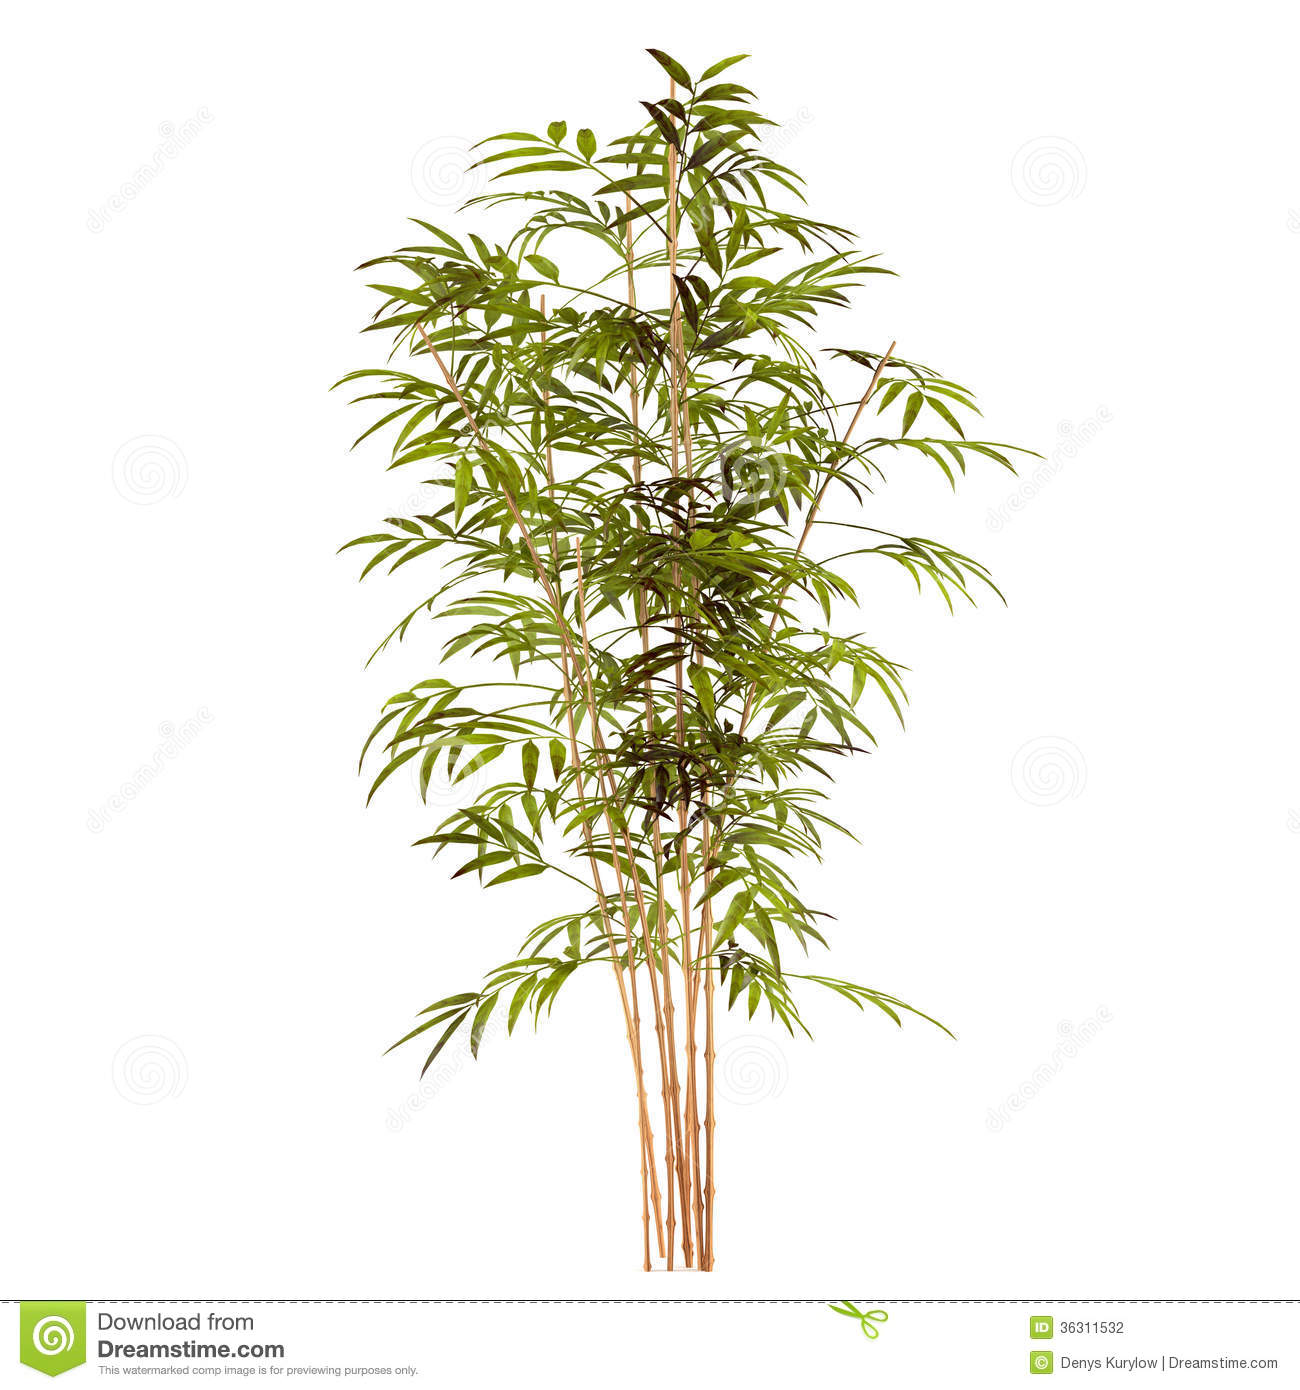 palm spring map with Stock Photography Bamboo Plant White Background Image36311532 on Stock Photography Bamboo Plant White Background Image36311532 furthermore Tortuga Sunfest Get Ready Music Festival Season Spring besides Dominican Republic Beaches further LocationPhotoDirectLink G147249 D299788 I27301876 Marriott s Aruba Surf Club Palm Eagle Beach Aruba likewise Alice Springs Holidays Nt.